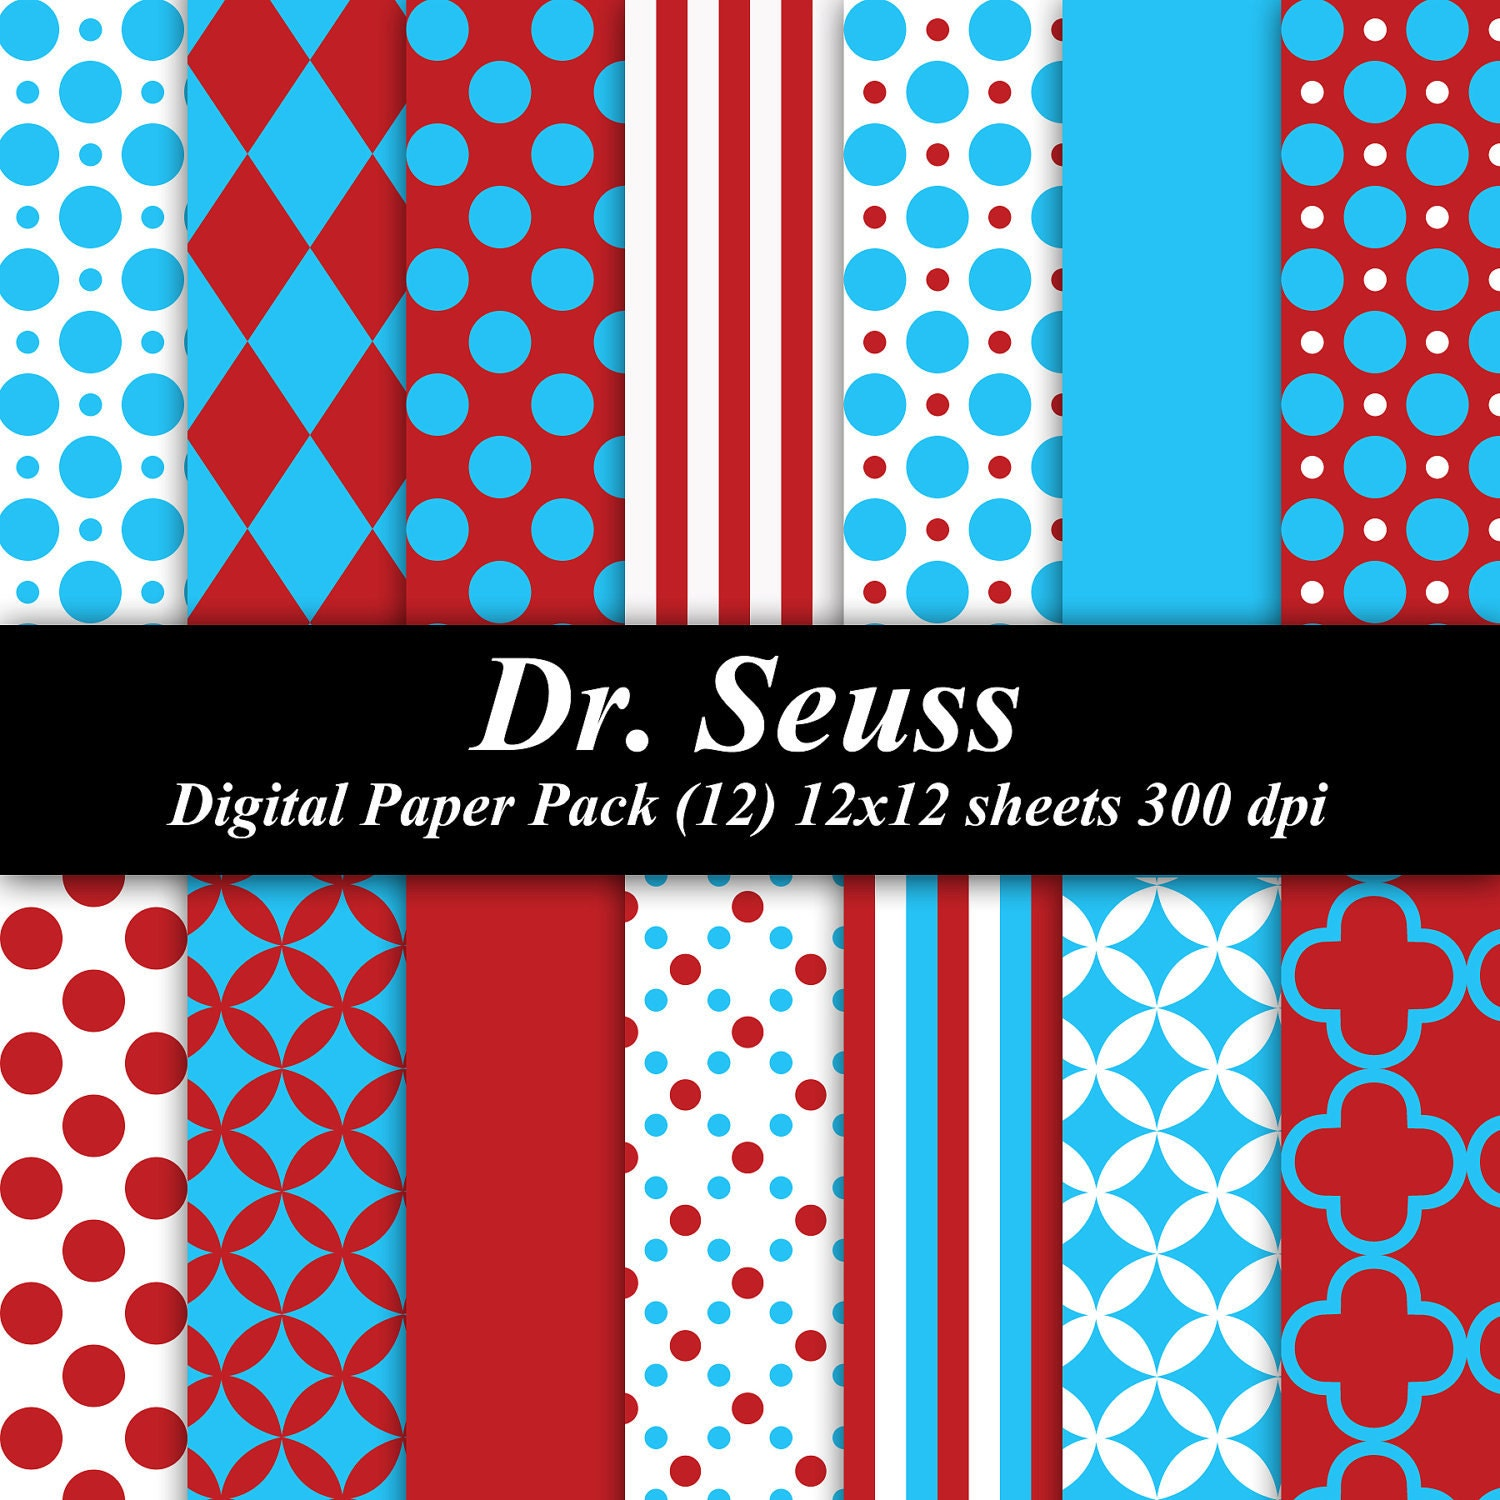 essays on dr seuss Official site of dr seuss and the cat in the hat featuring games, printable activities, the complete illustrated character guide, information about creator theodor.